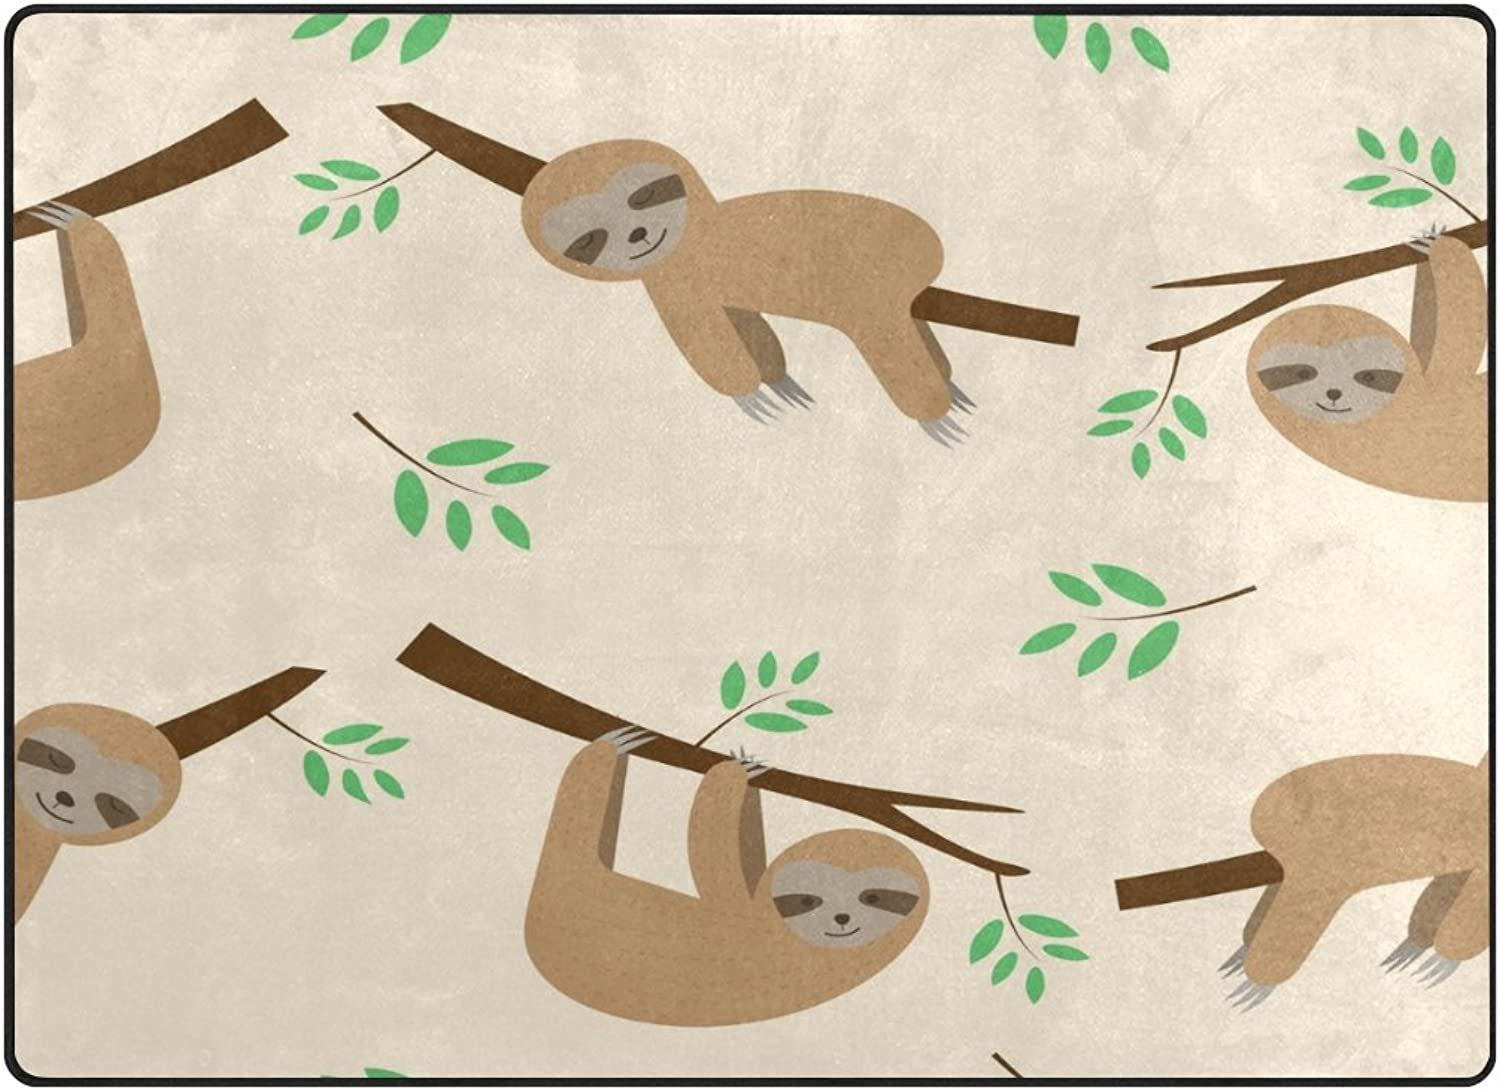 SUABO 80 x 58 inches Area Rug Non-Slip Floor Mat Sleeping Sloth Printed Doormats for Living Room Bedroom